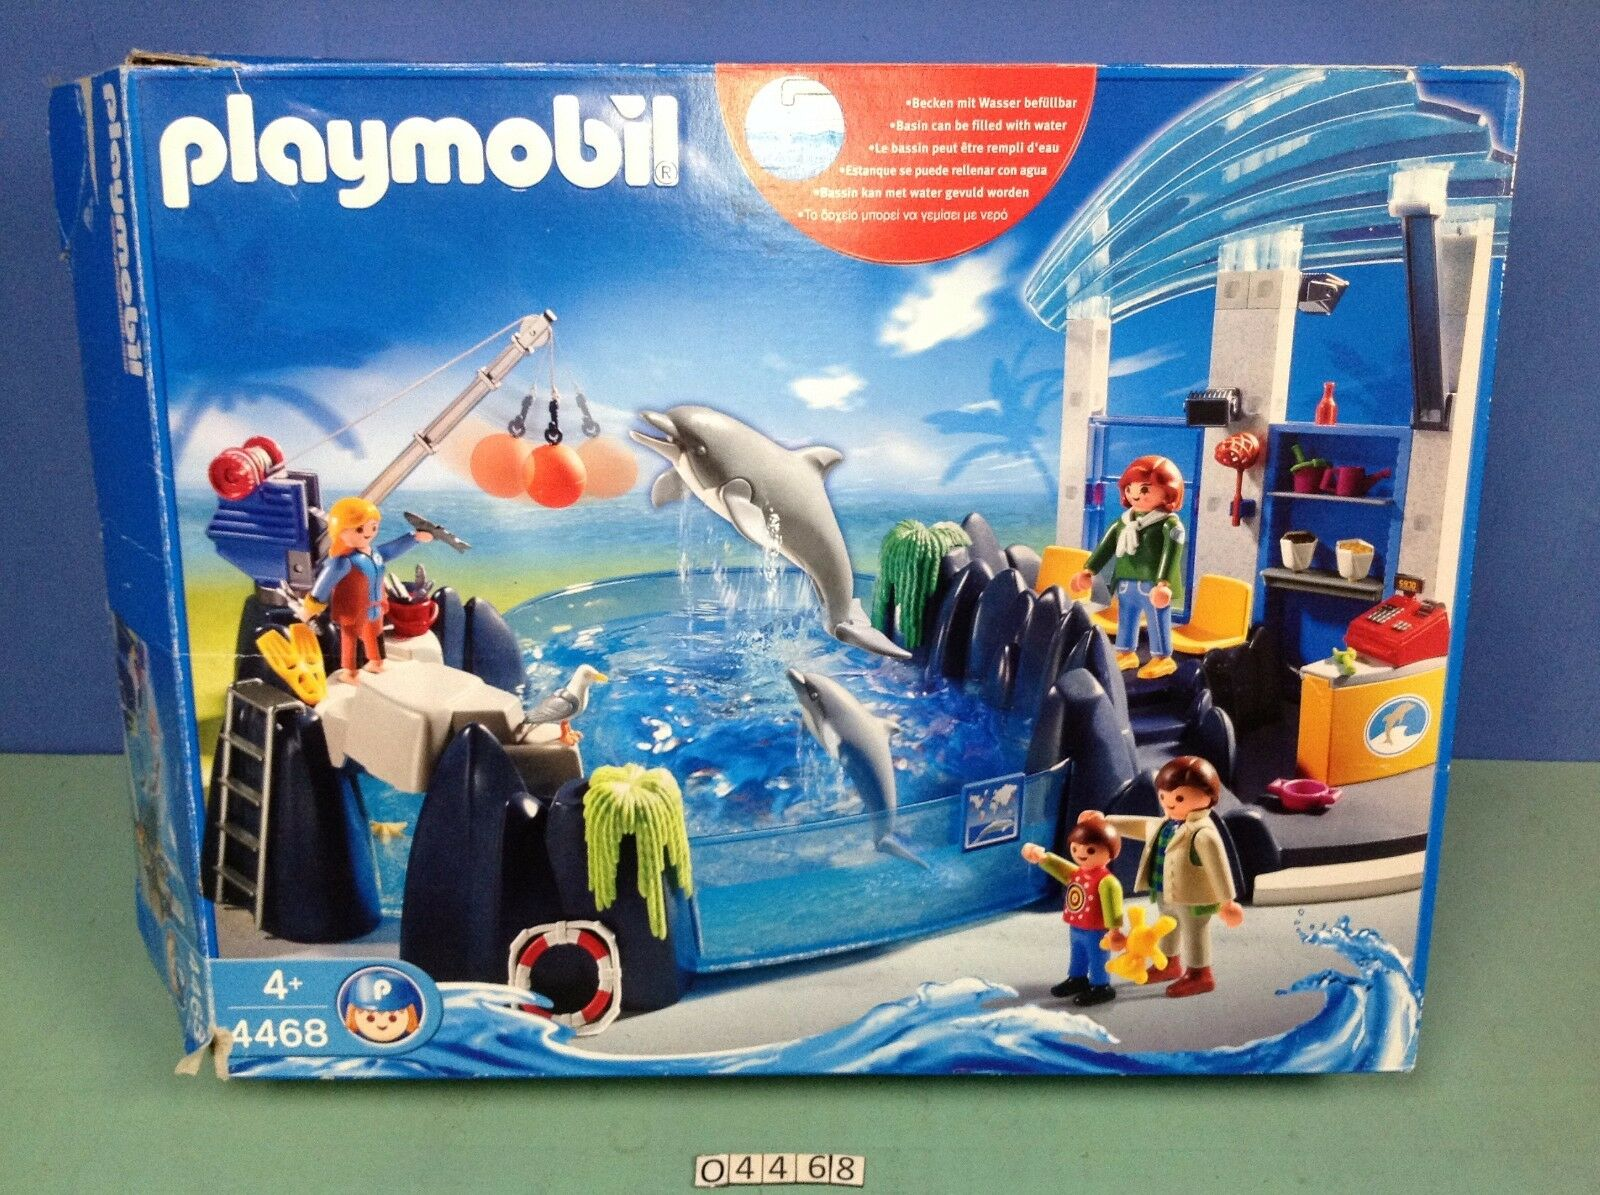 (O4468) playmobil Bassin des dauphins ref 4468 complet en boite zoo 3240 4462